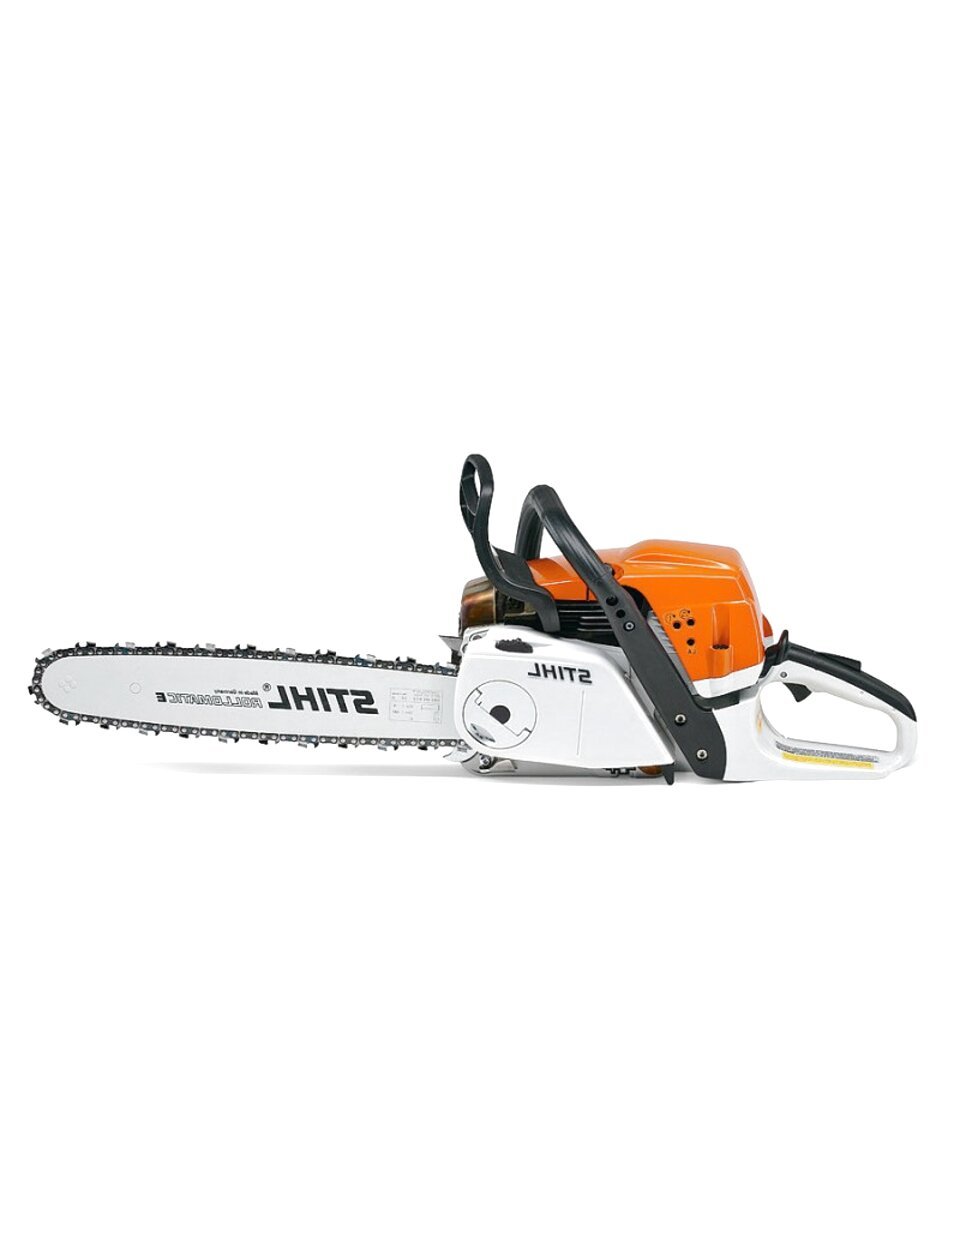 stihl ms 362 for sale